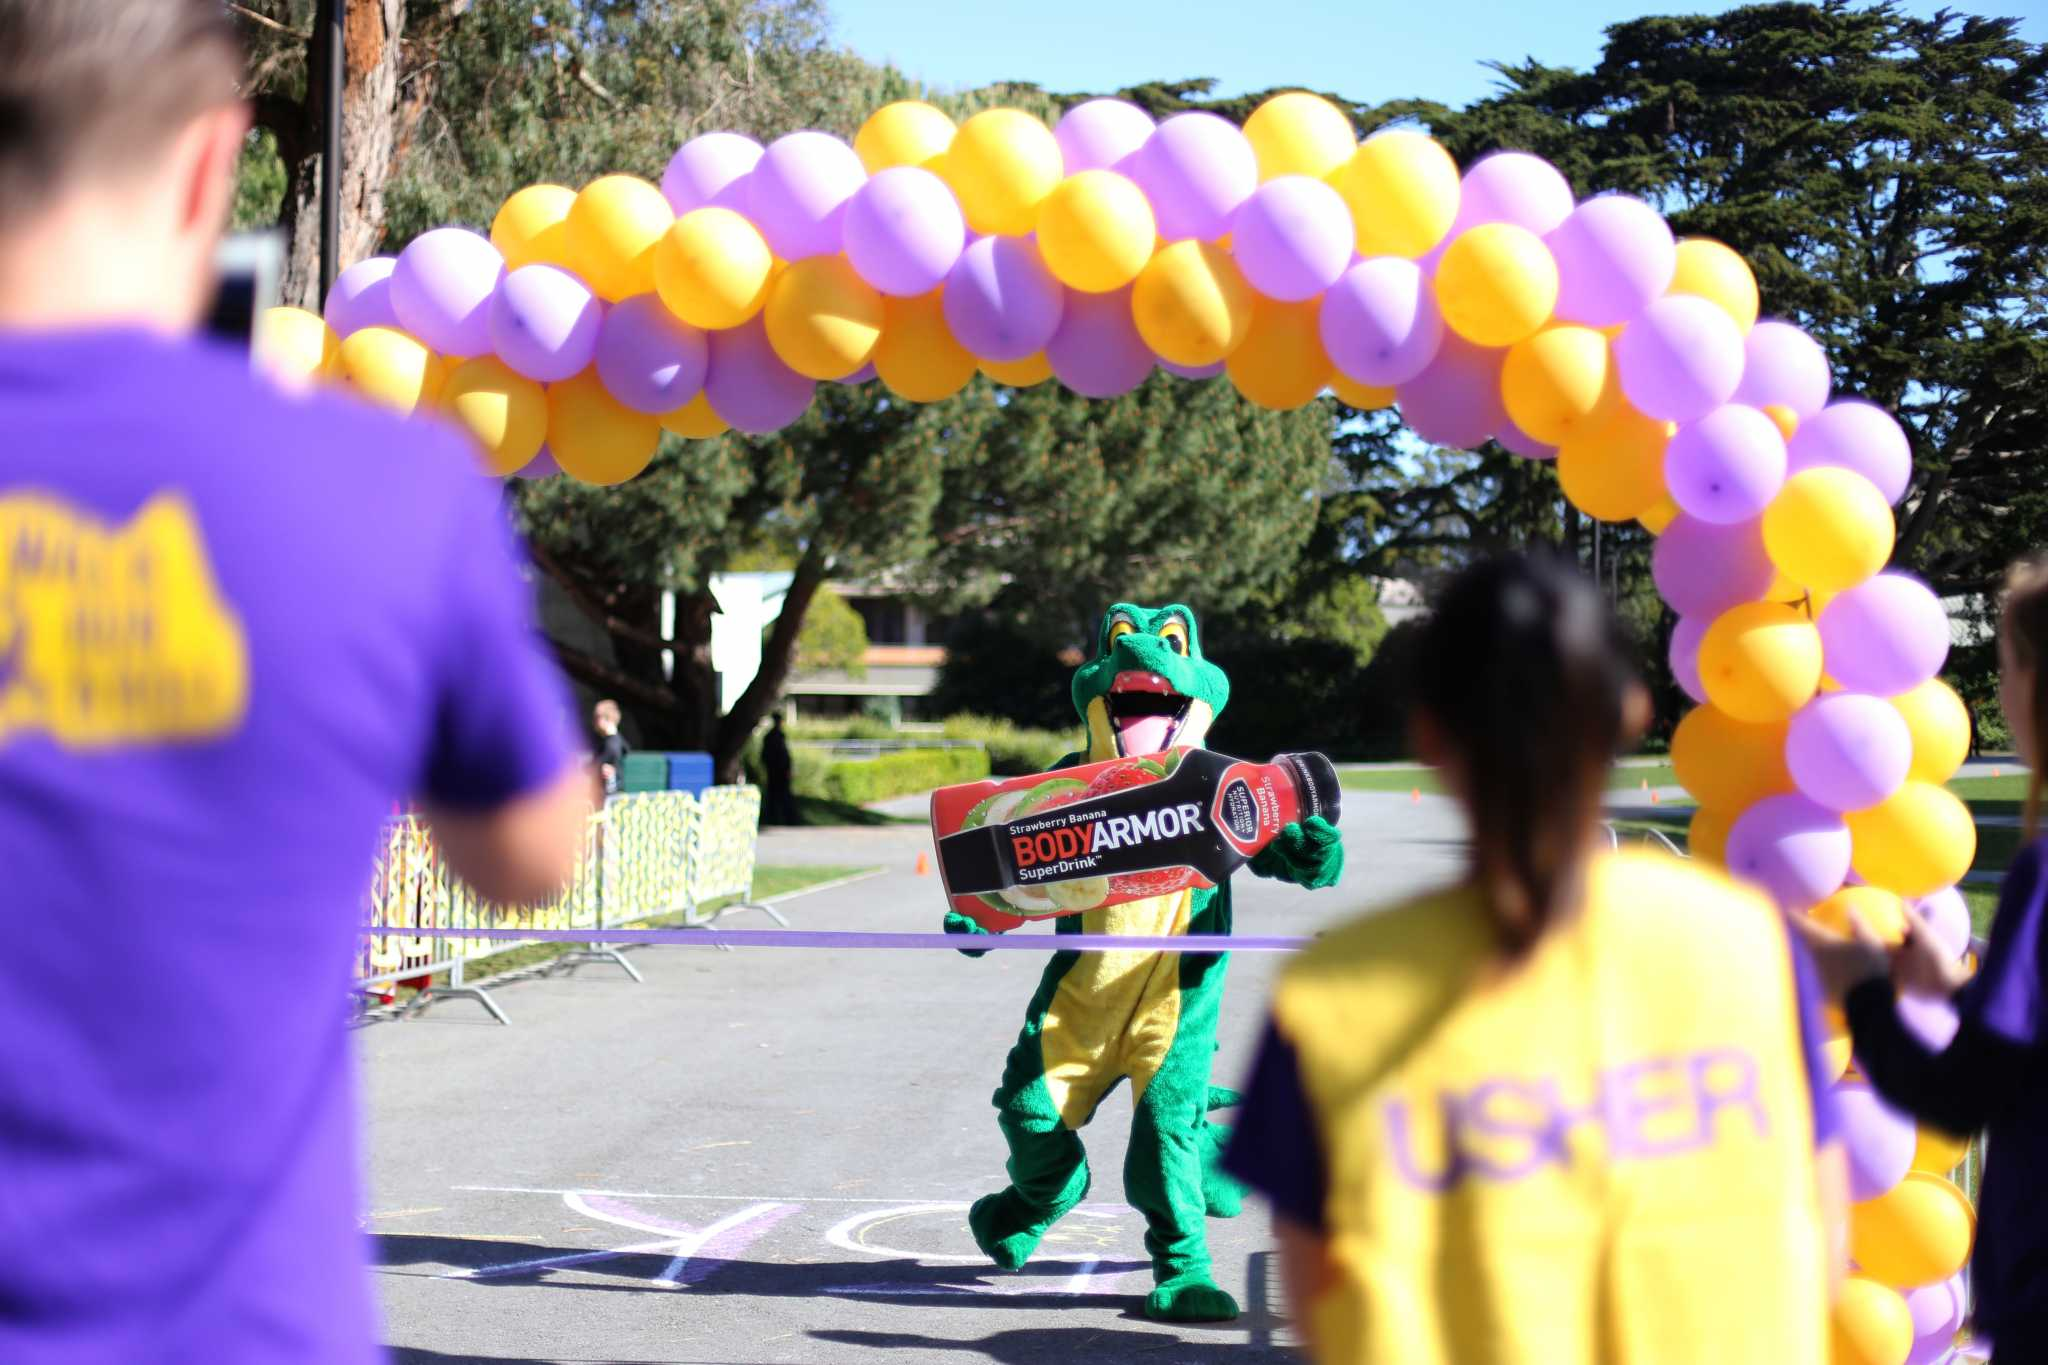 The SF State Gator cheers at the finish line of the 5K Run Roll Walk, Sunday, April 24, 2016. (Perng-chih Huang/Xpress)